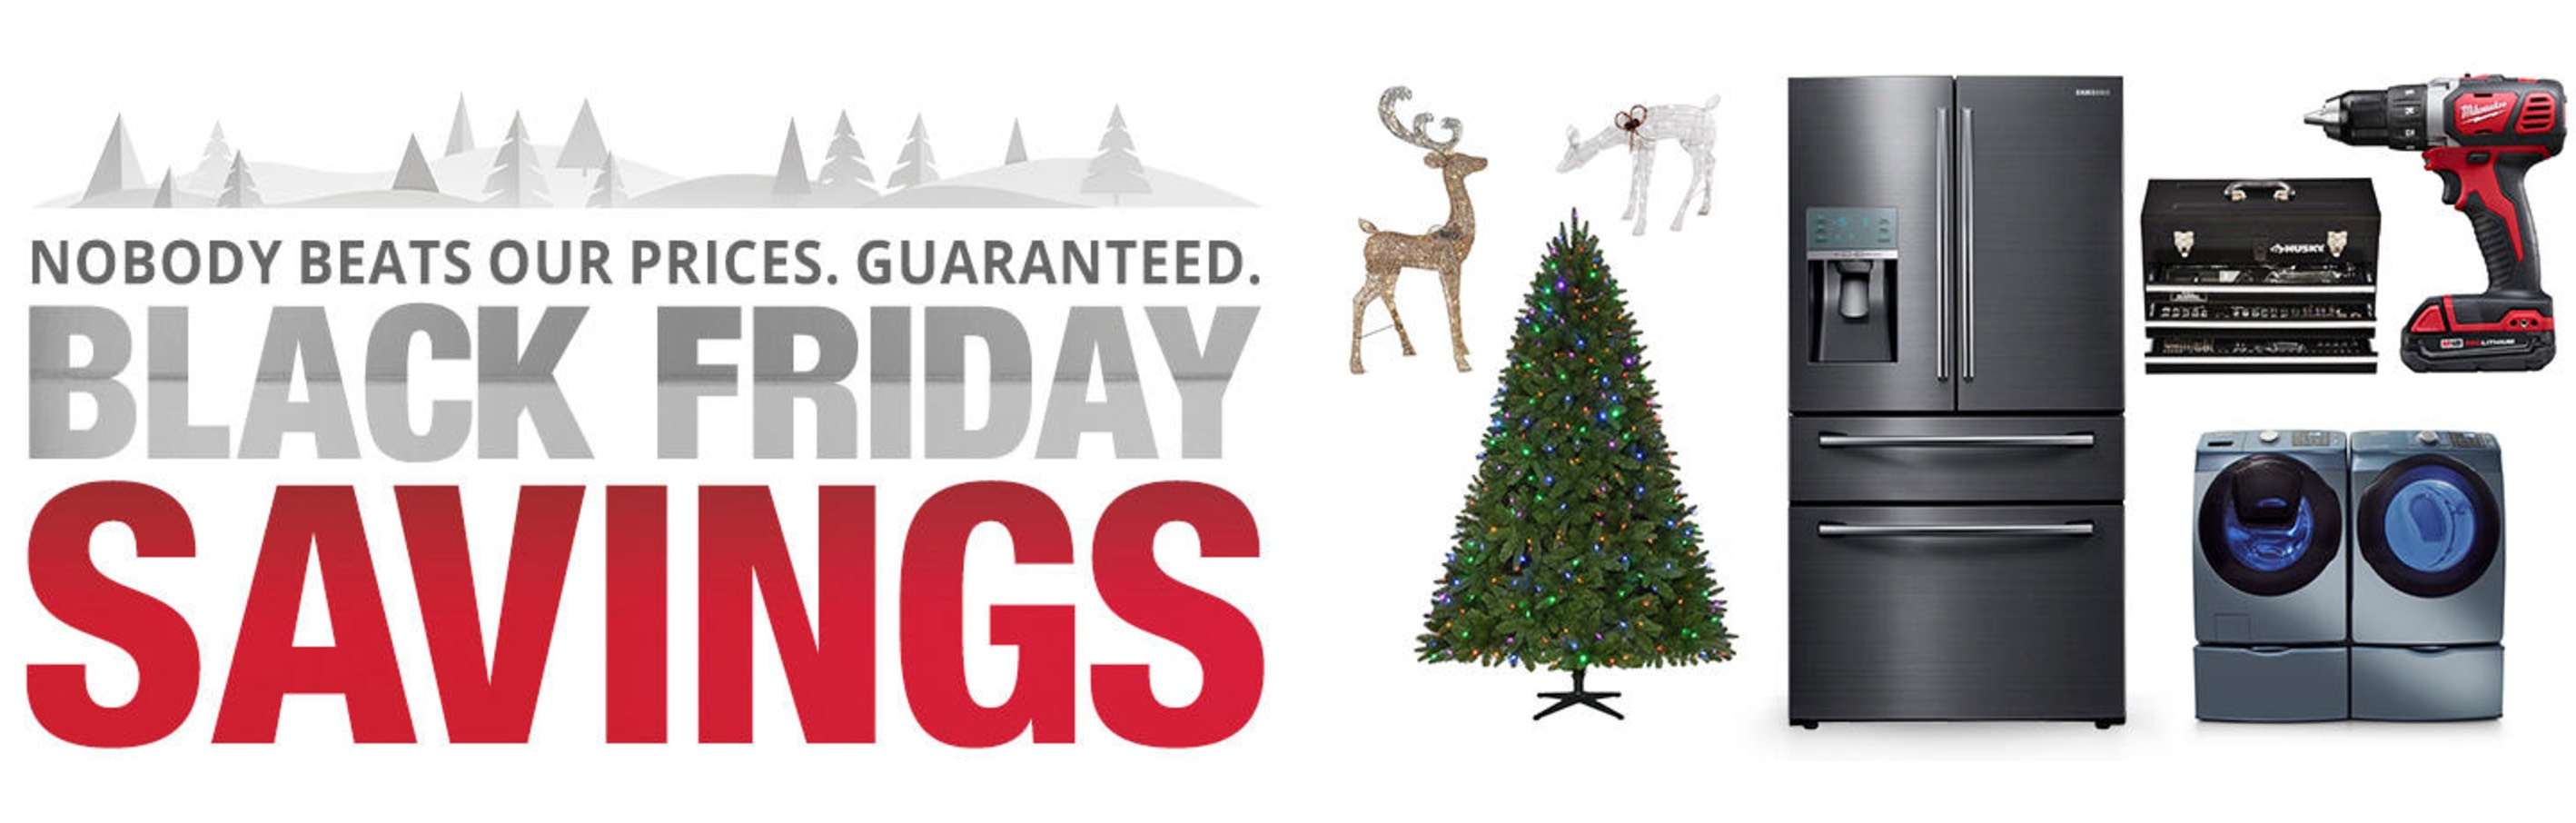 Home Depot Black Friday Ad is LIVE!!!